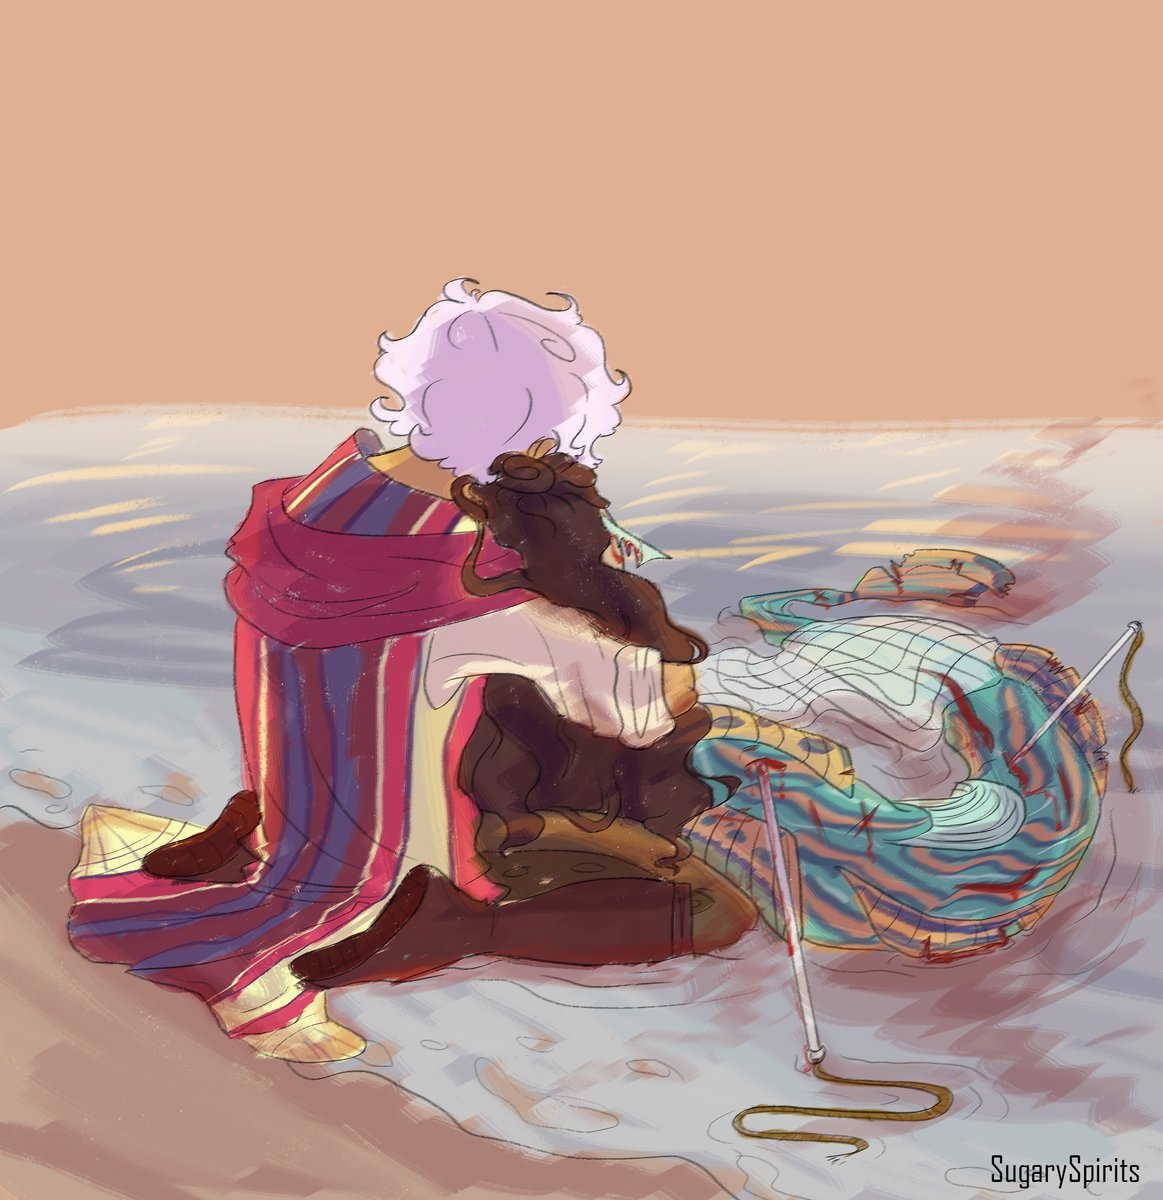 Uh oh, sad time for Mermaid au #TheArcanaGame #fanapprentice #asrathemagician pic.twitter.com/35JAcQPppO